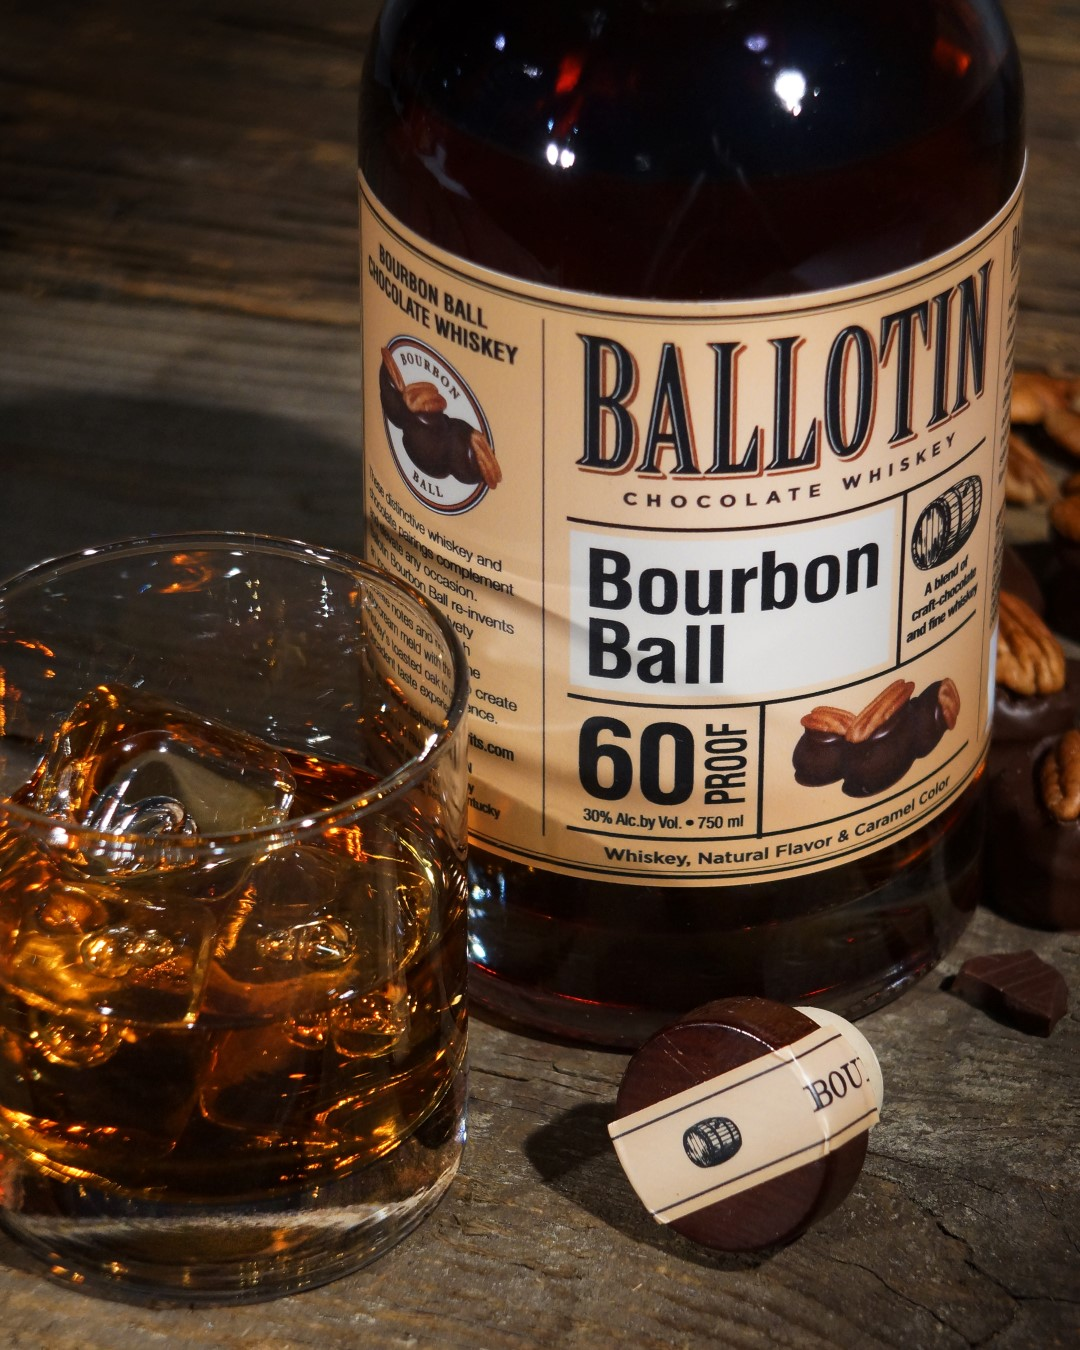 Ballotin Bourbon Ball Whiskey